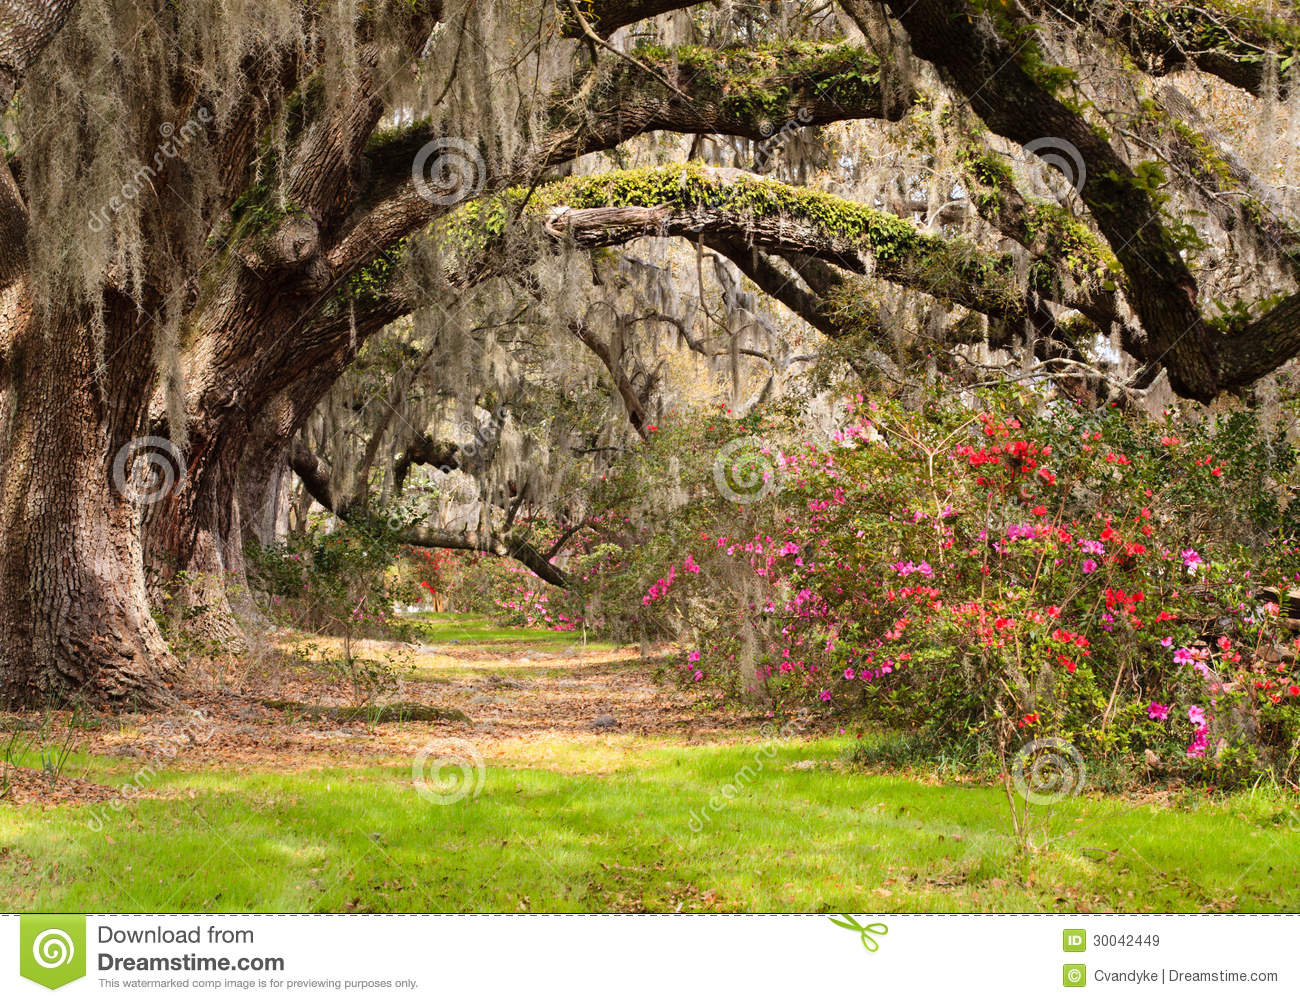 fall in charleston sc with Royalty Free Stock Images Landscape Azaleas Contrasted Against Color New Spring Green Grass Blooming Beneath Tunnel Old Southern Live Oak Trees Hanging Moss Image30042449 on A Taste Of Charleston Sc likewise Curacao One Of Caribbeans Best Kept besides 1MeT9cmDpy further Charleston Sc Angel Oak Tree South Carolina Landscape Dave Allen also Fly Fishing For Redfish In South Carolina.